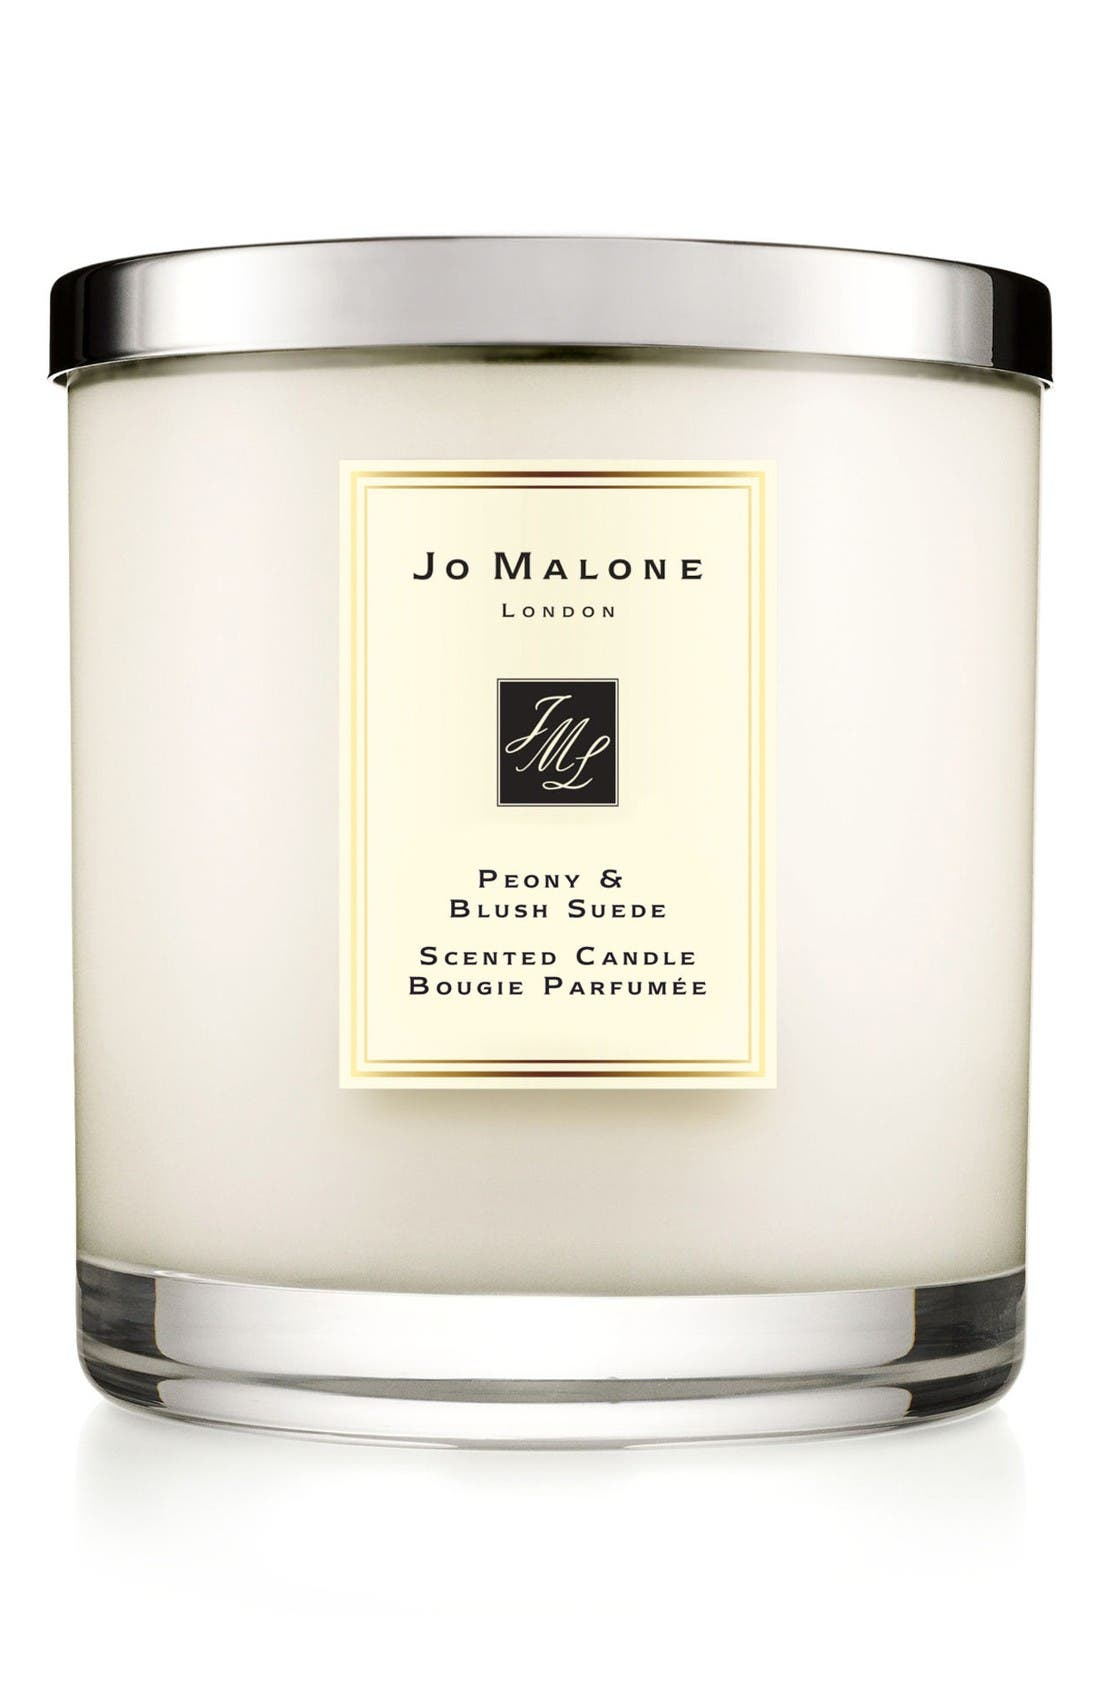 Jo Malone London™ Peony & Blush Suede Luxury Scented Candle